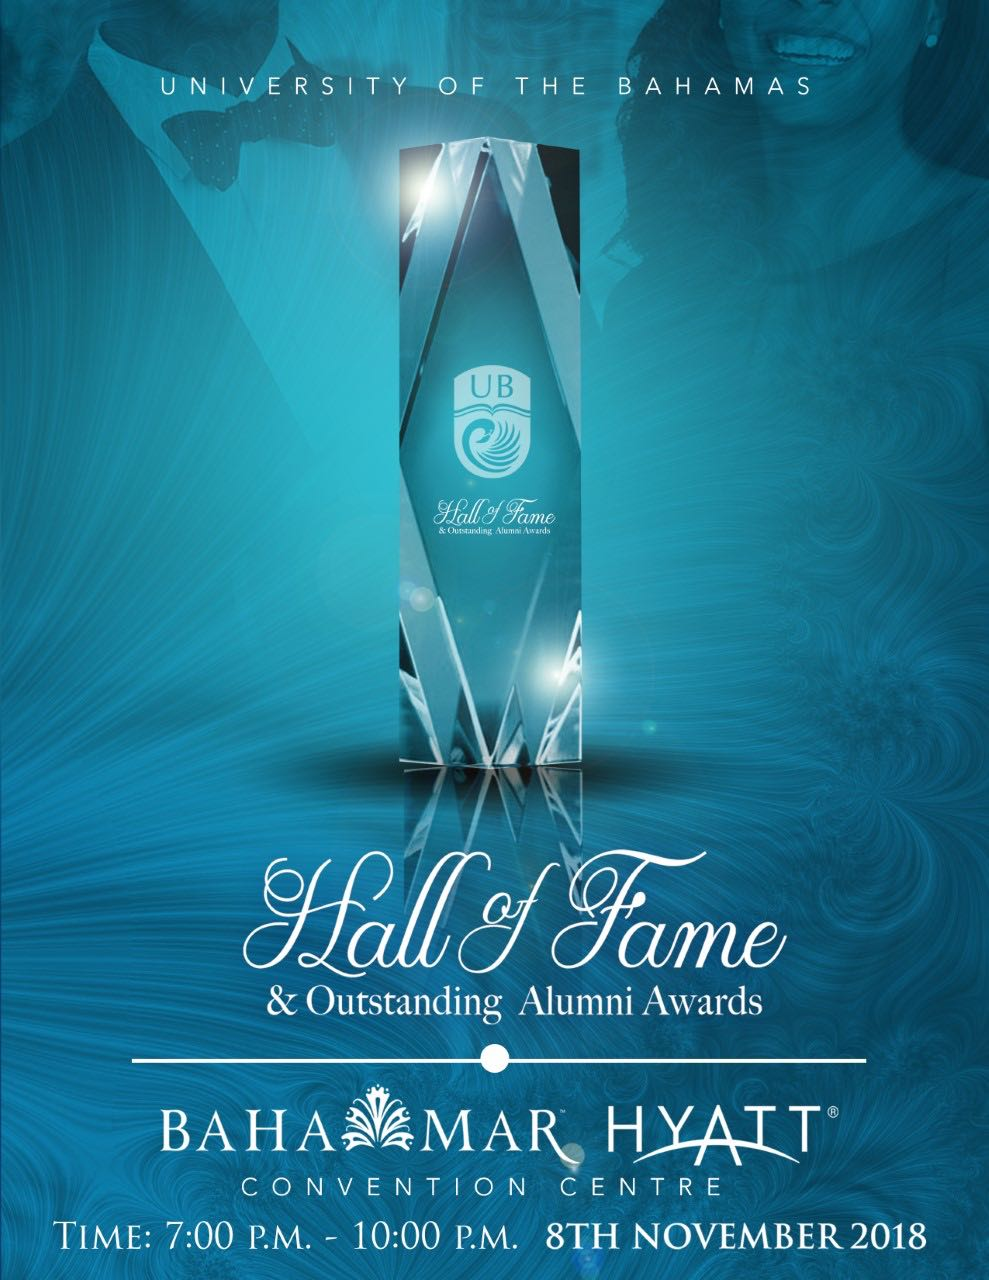 University Of the Bahamas Hall of Fame & Outstanding Alumni Awards